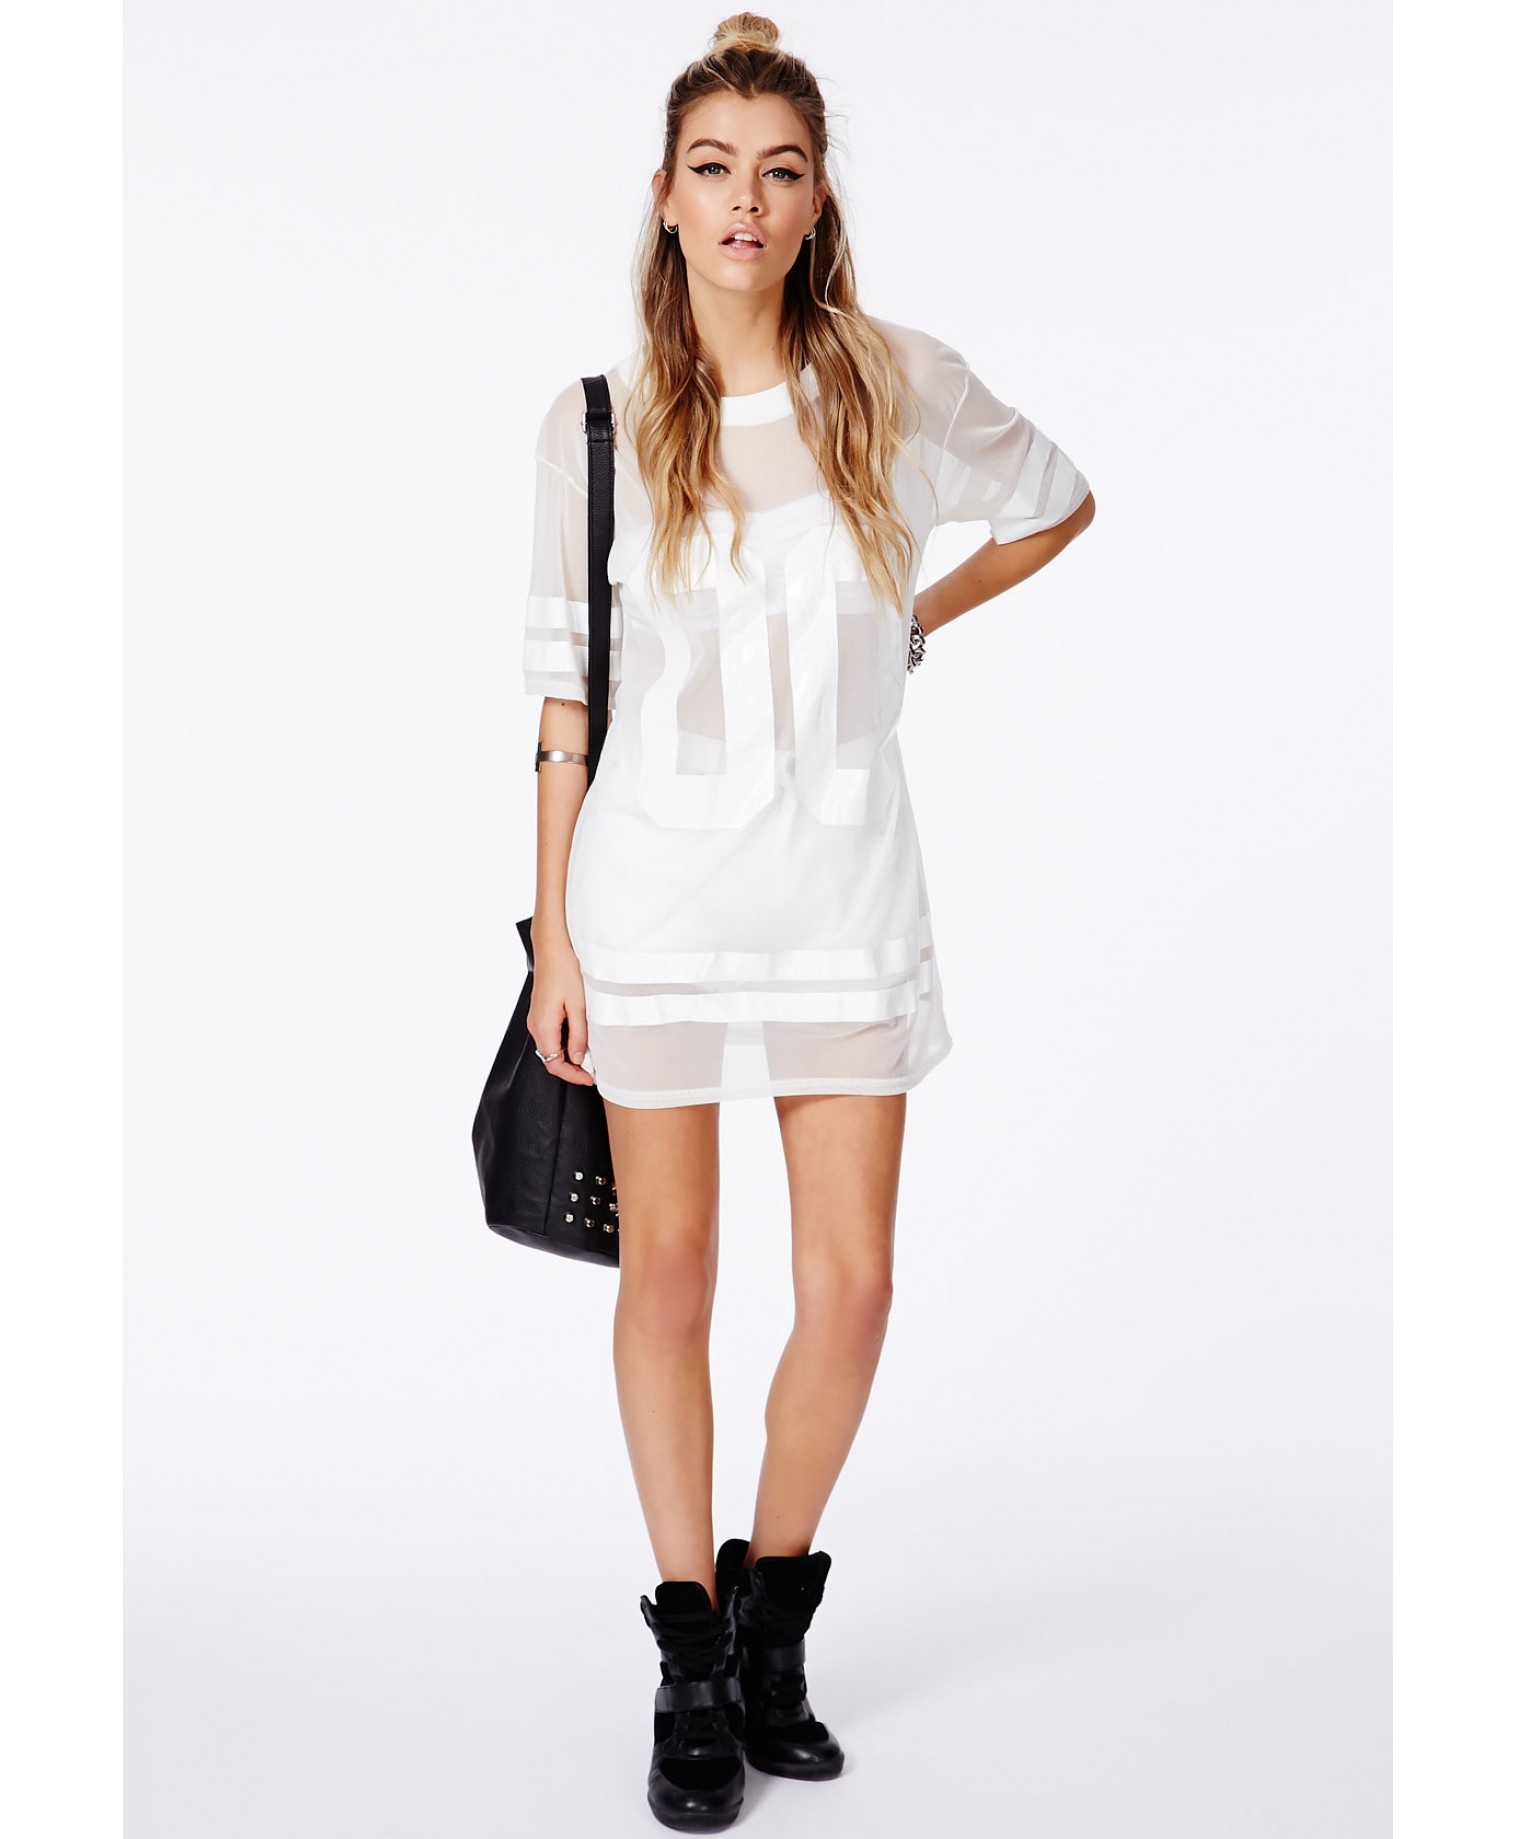 Missguided Hugette White American Football Mesh T-Shirt in White - Lyst 7ecddcd26